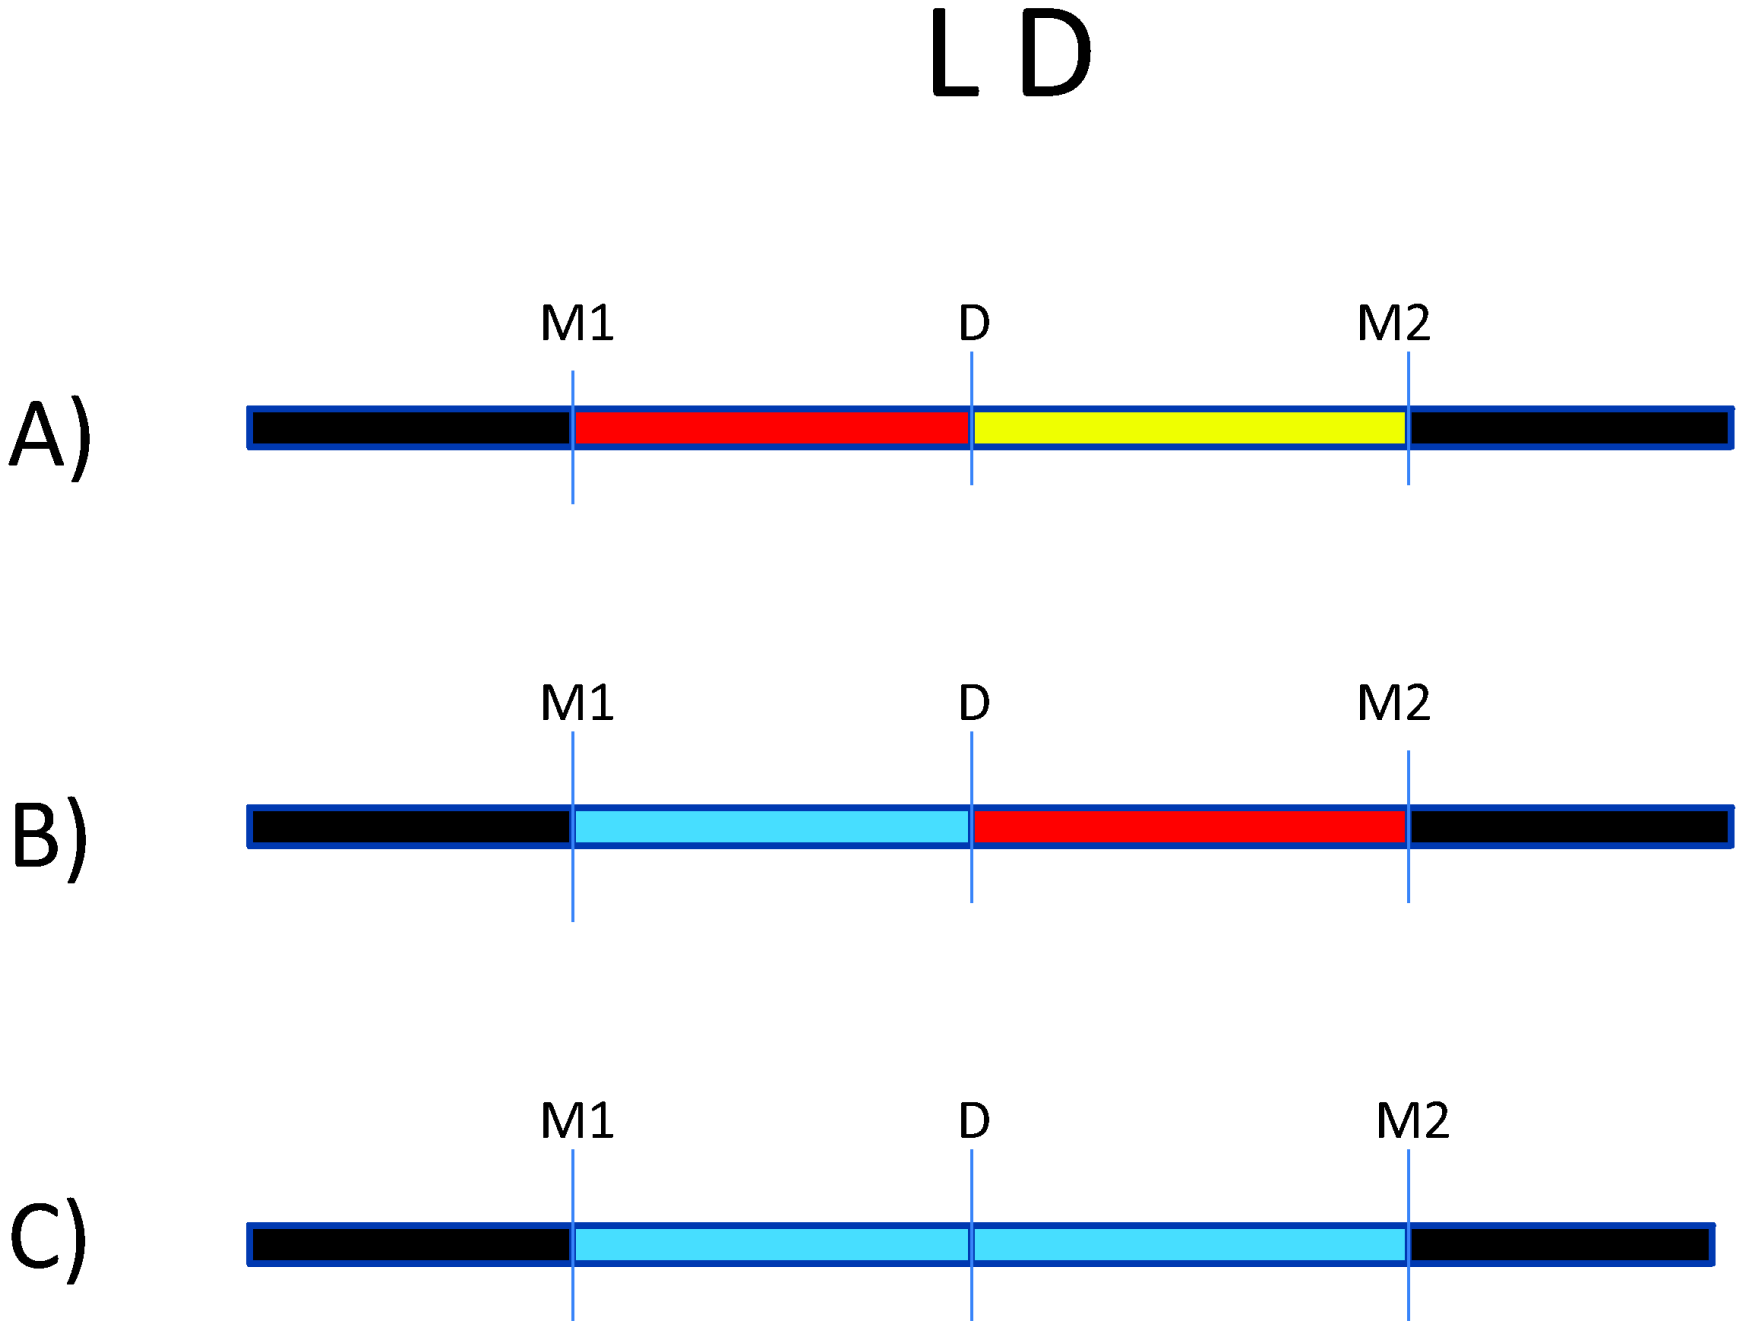 Impact of variation in linkage disequilibrium (LD) in detection of disease risk alleles.